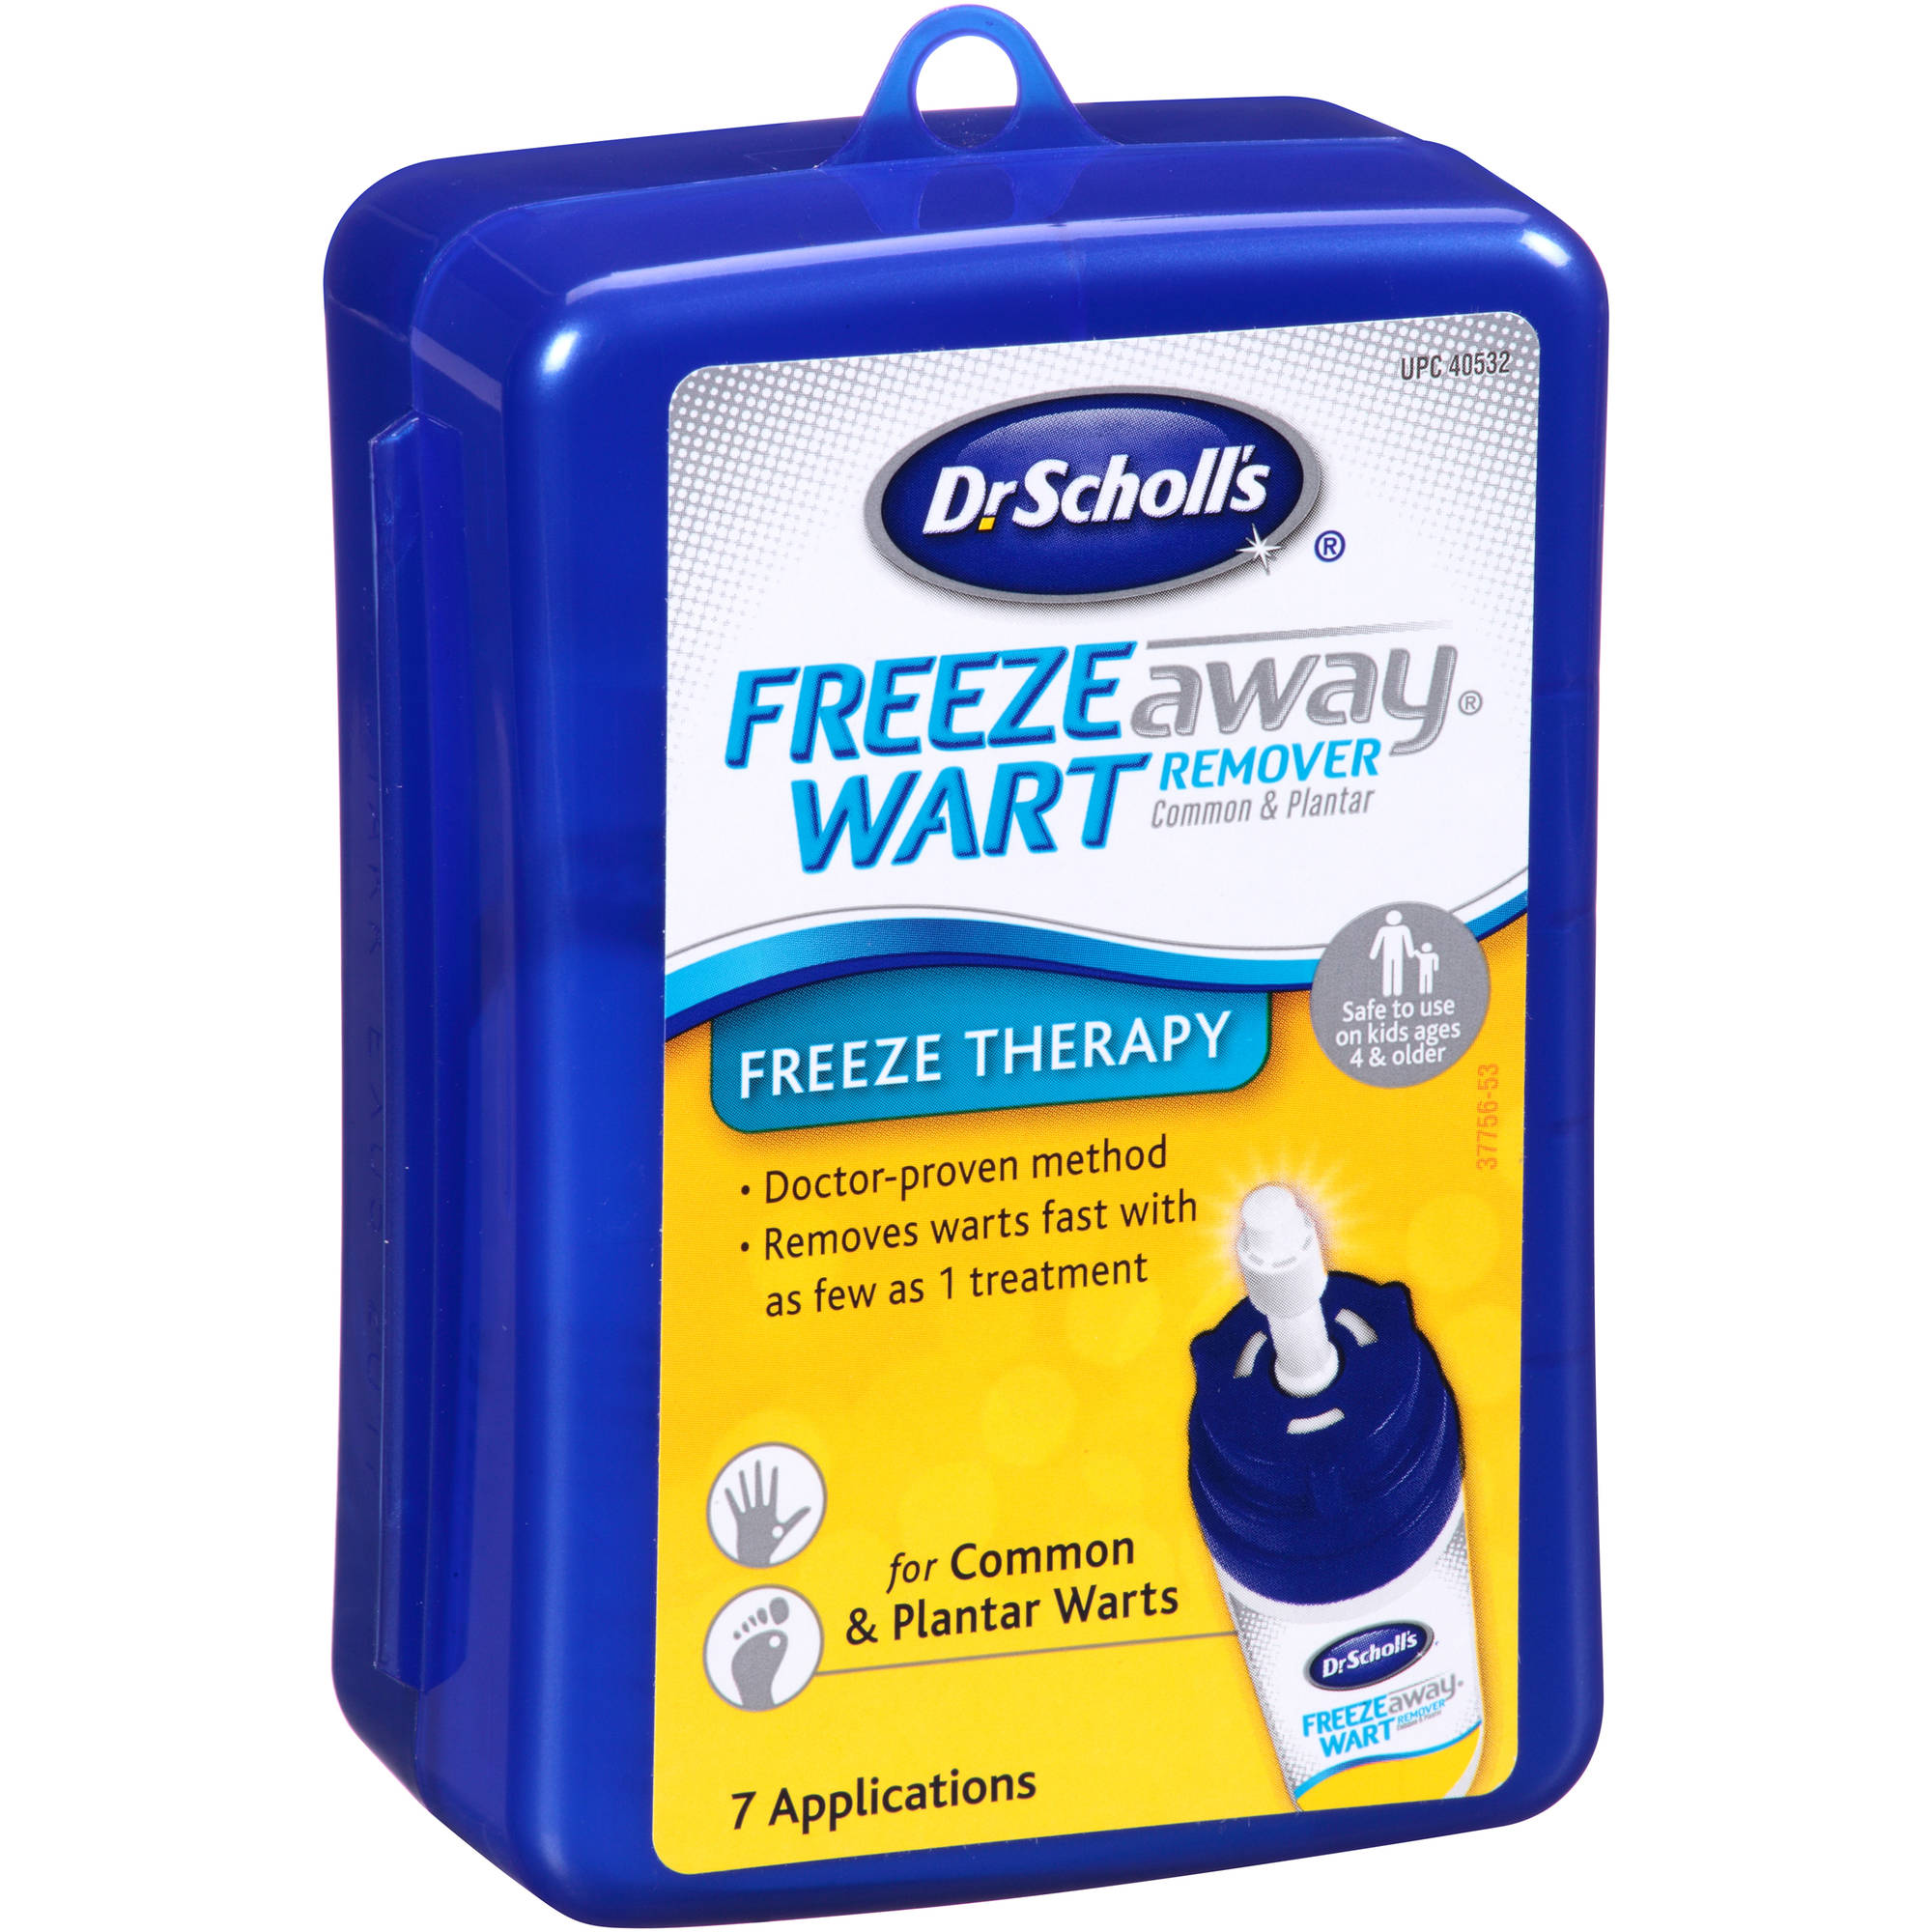 Dr. Scholl's Freeze Away Common & Plantar Wart Remover